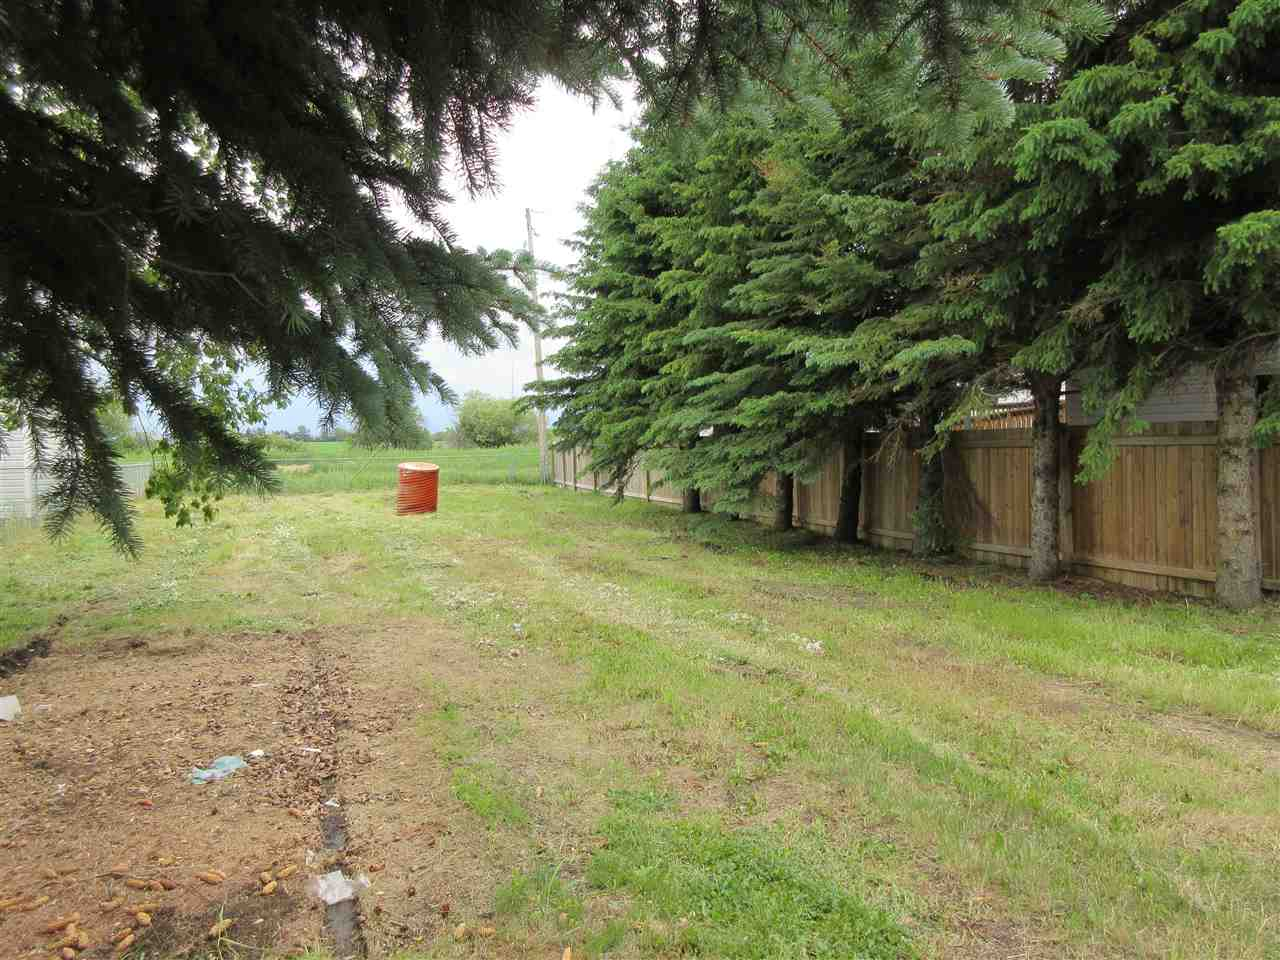 Photo 3: 913 1 Street: Thorhild Vacant Lot for sale : MLS® # E4069741